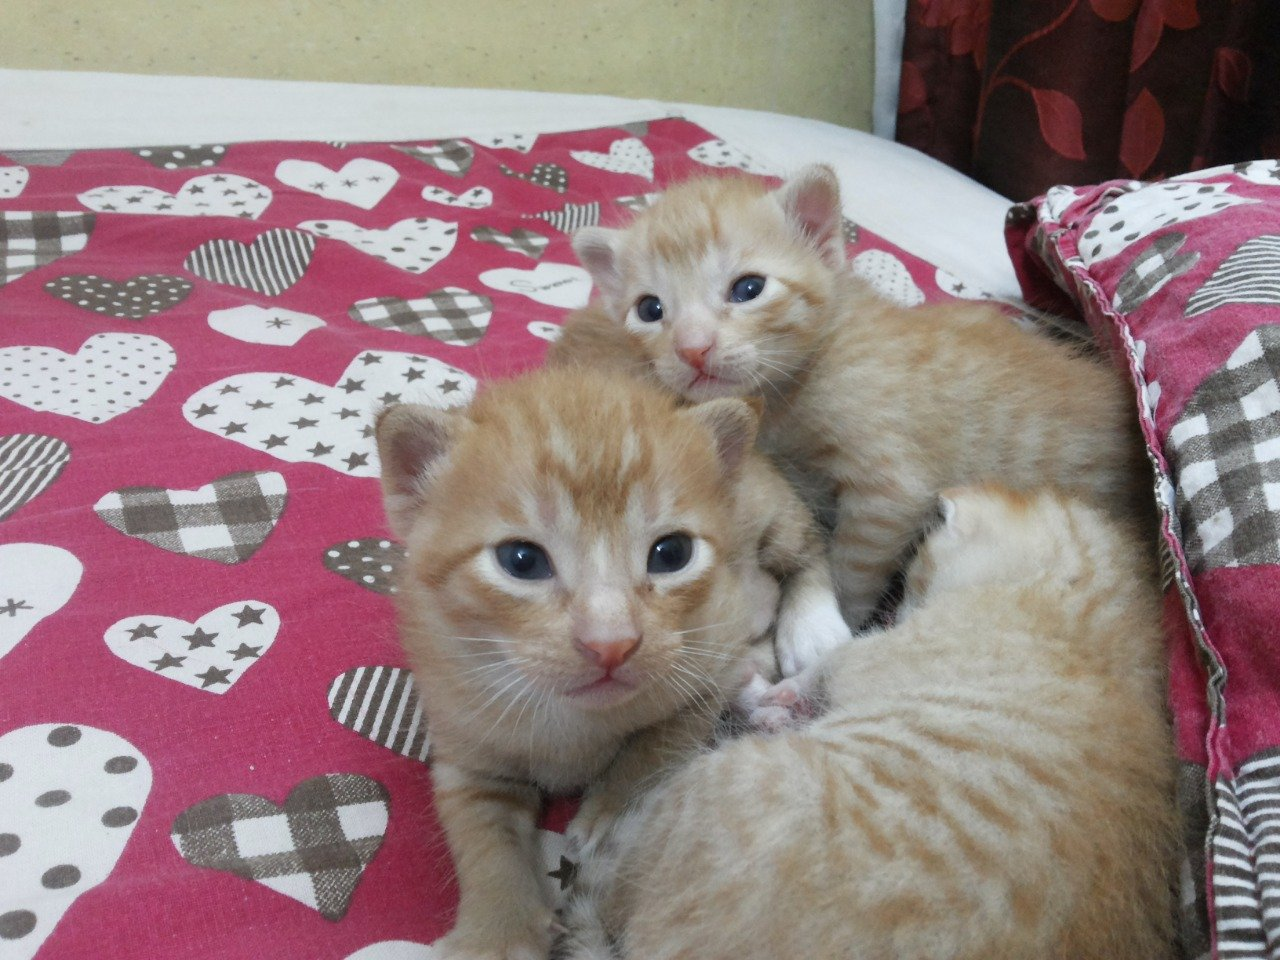 Cats looking at you to induce the Kawaii effect